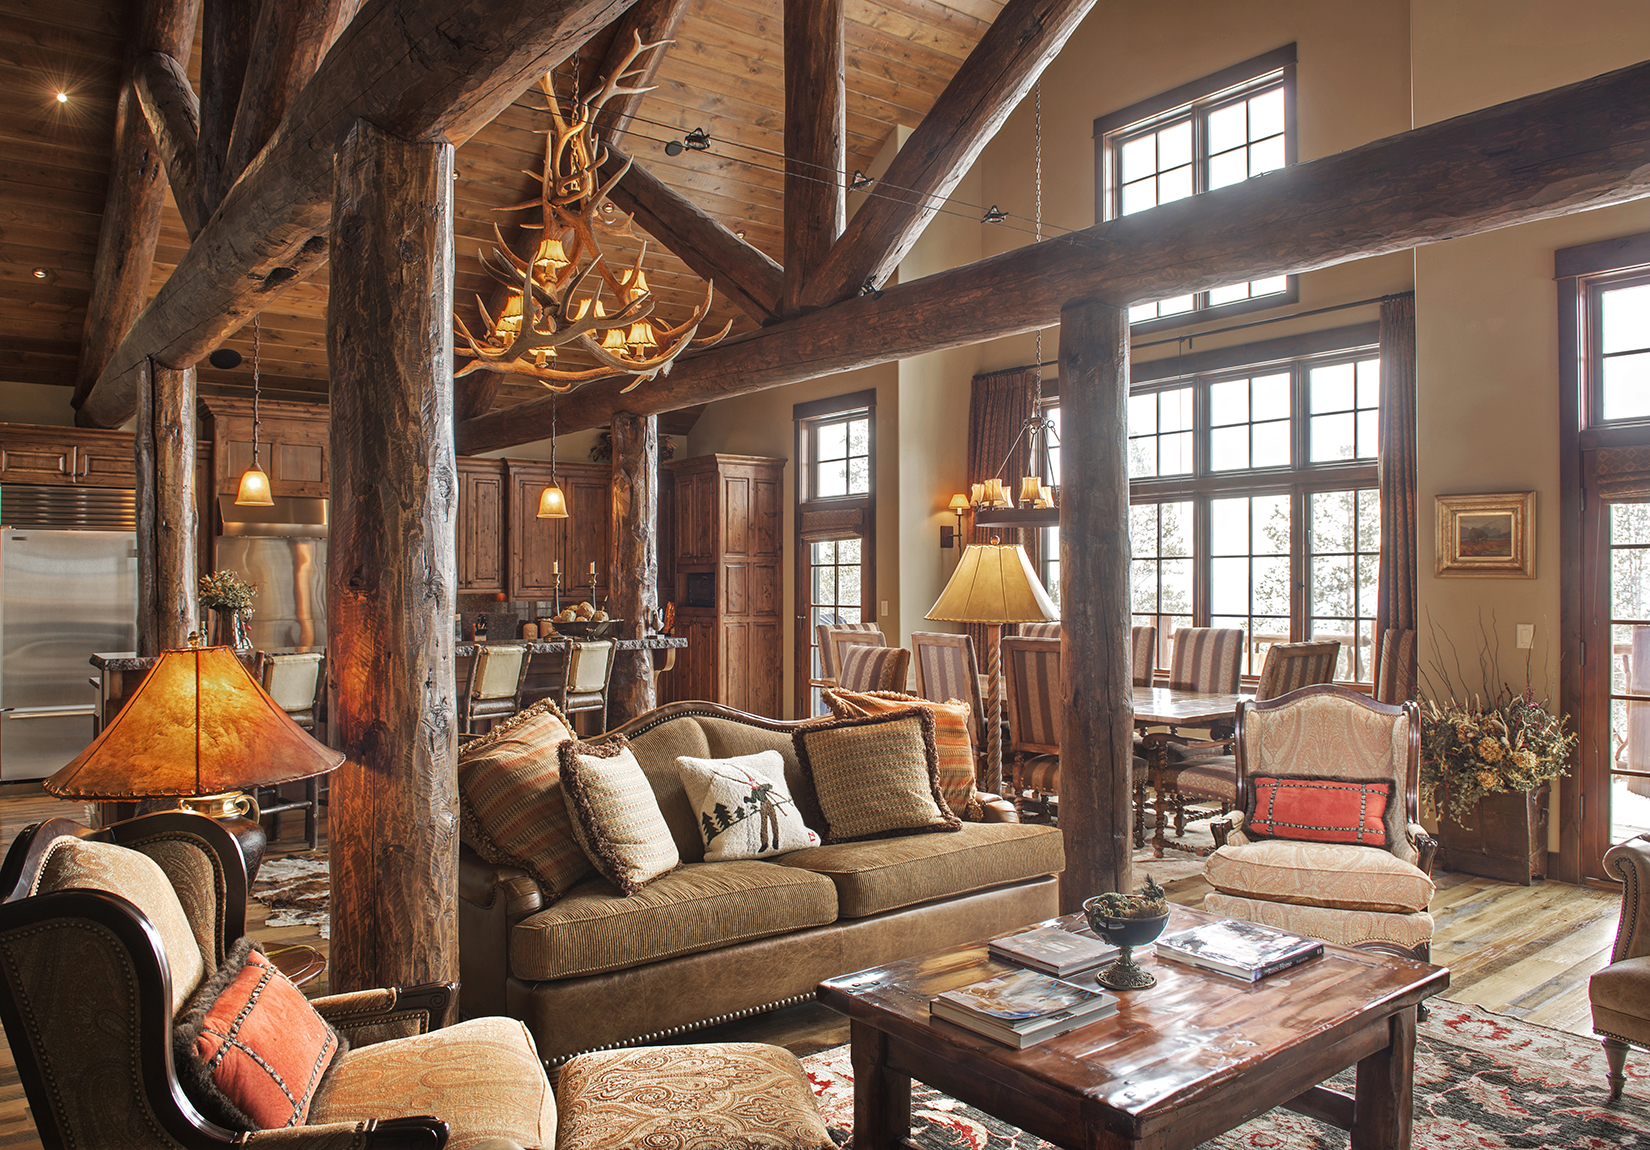 The large timbers in this home reminded me of a cozy log cabin - a log cabin with exceptional ski access!